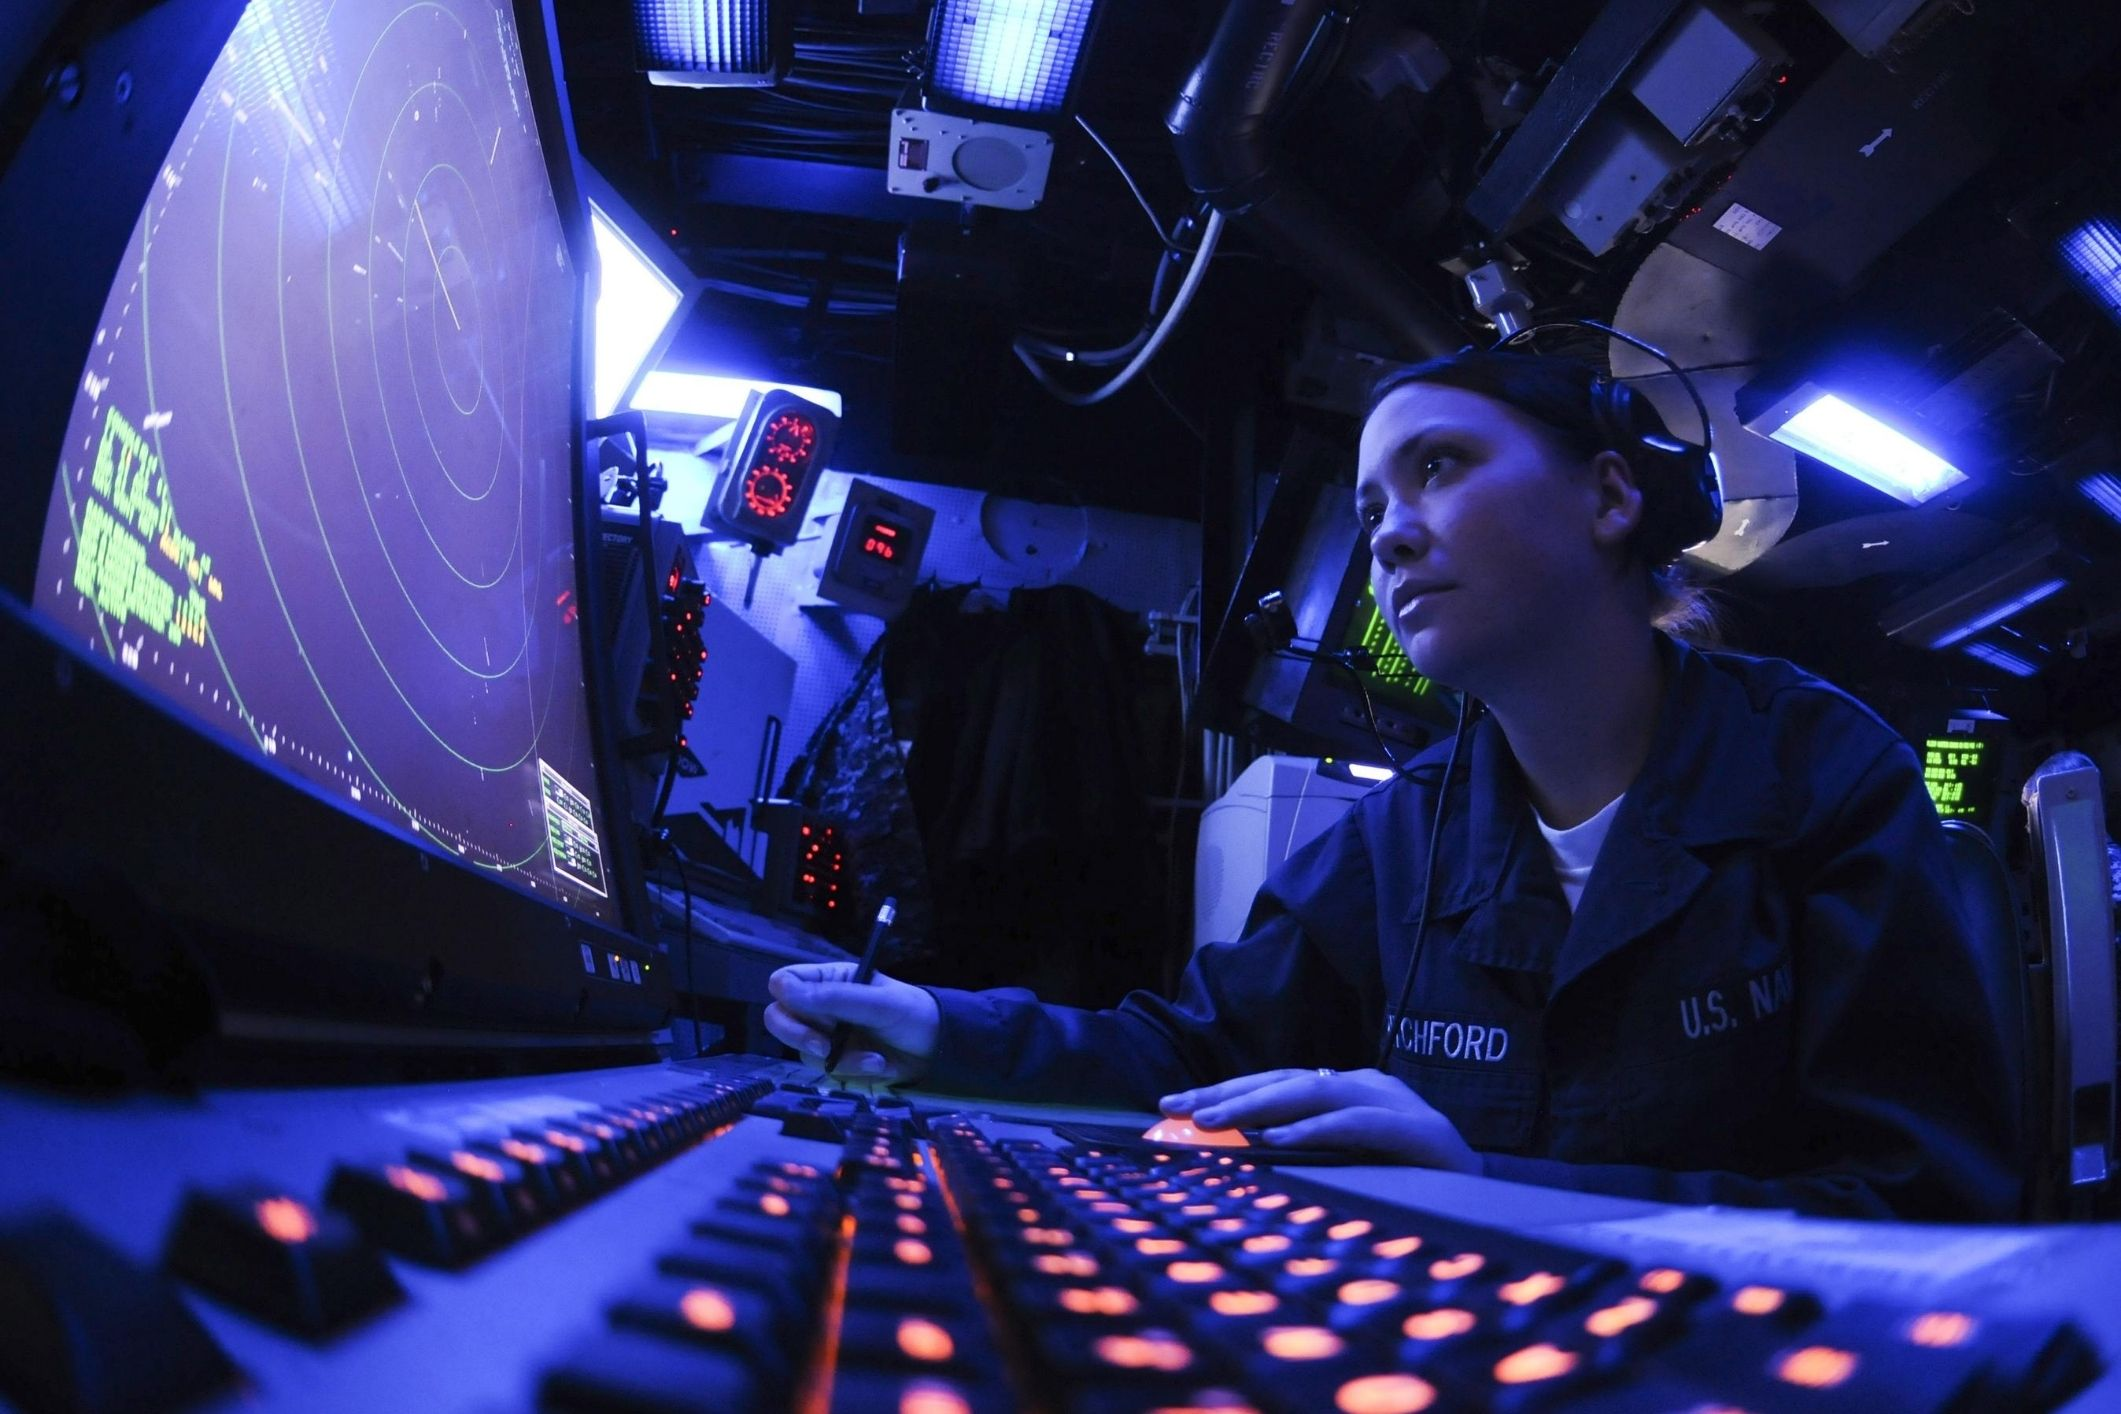 case study navy data compression submarine communications